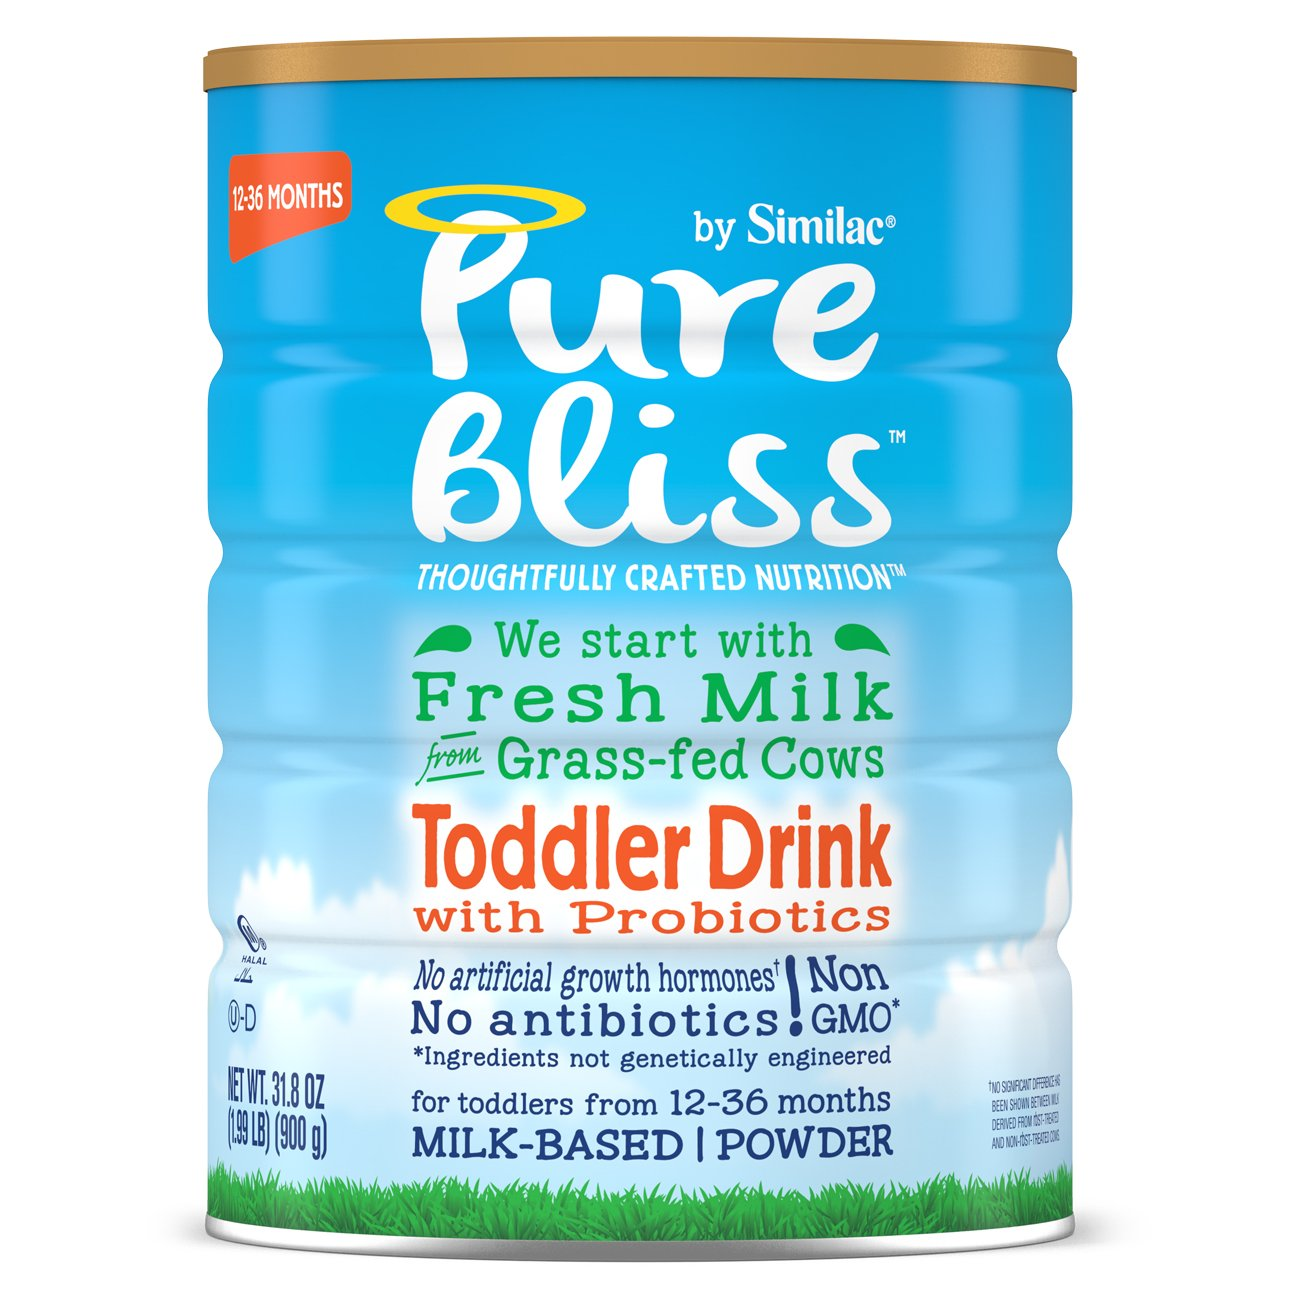 Pure Bliss by Similac Toddler Drink with Probiotics, Starts with Fresh Milk from Grass-Fed Cows, One Month Supply, 31.8 ounces (Pack of 4)